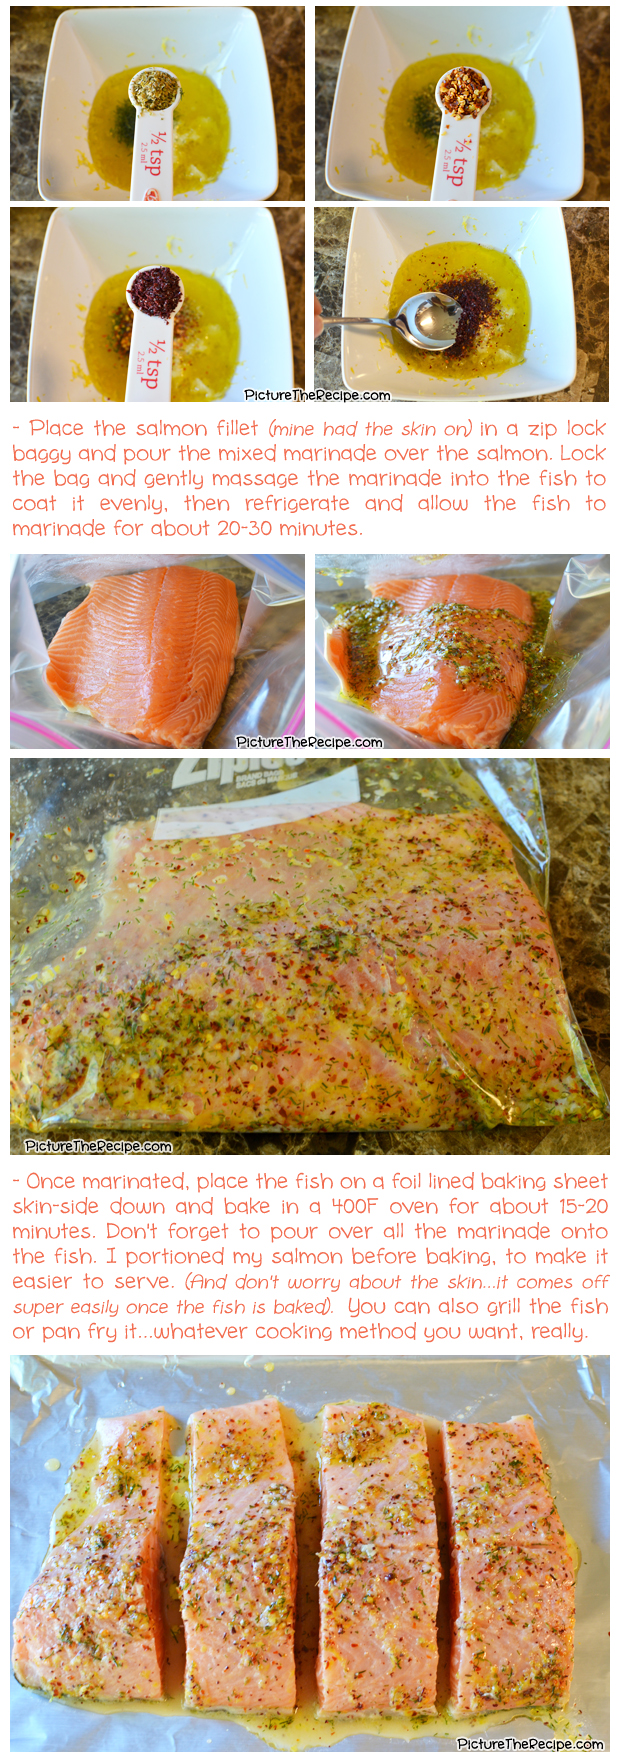 Greek Marinated Salmon Recipe- Part 2